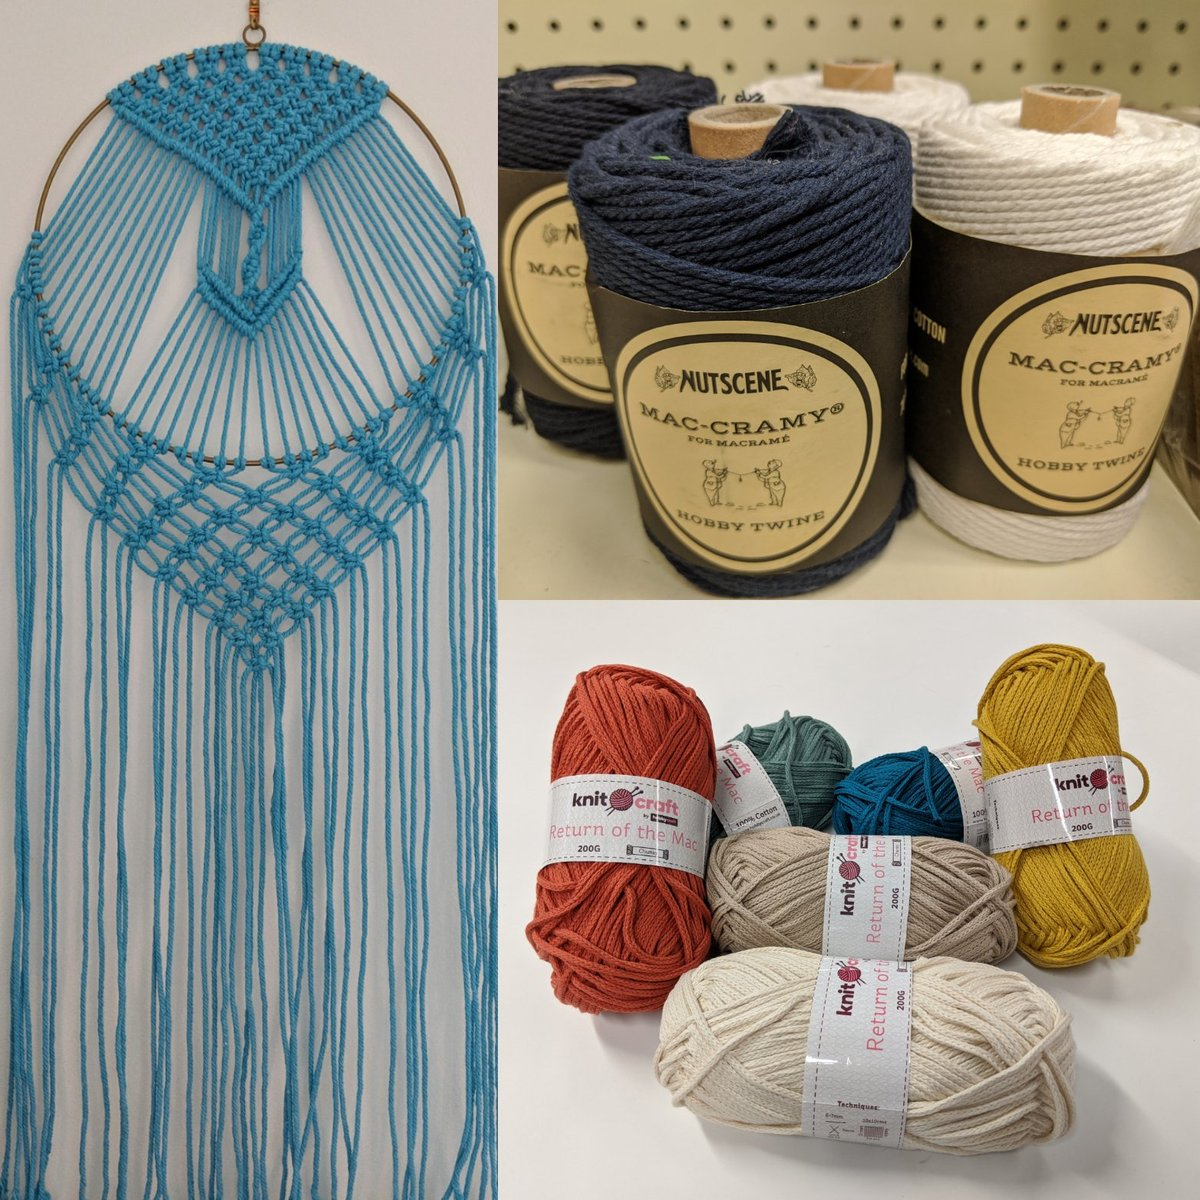 Ever want to try macrame? We've got some lovely new colours of Return of the Mac in store now! #Chelmsford <br>http://pic.twitter.com/QPJ5lf2g1J